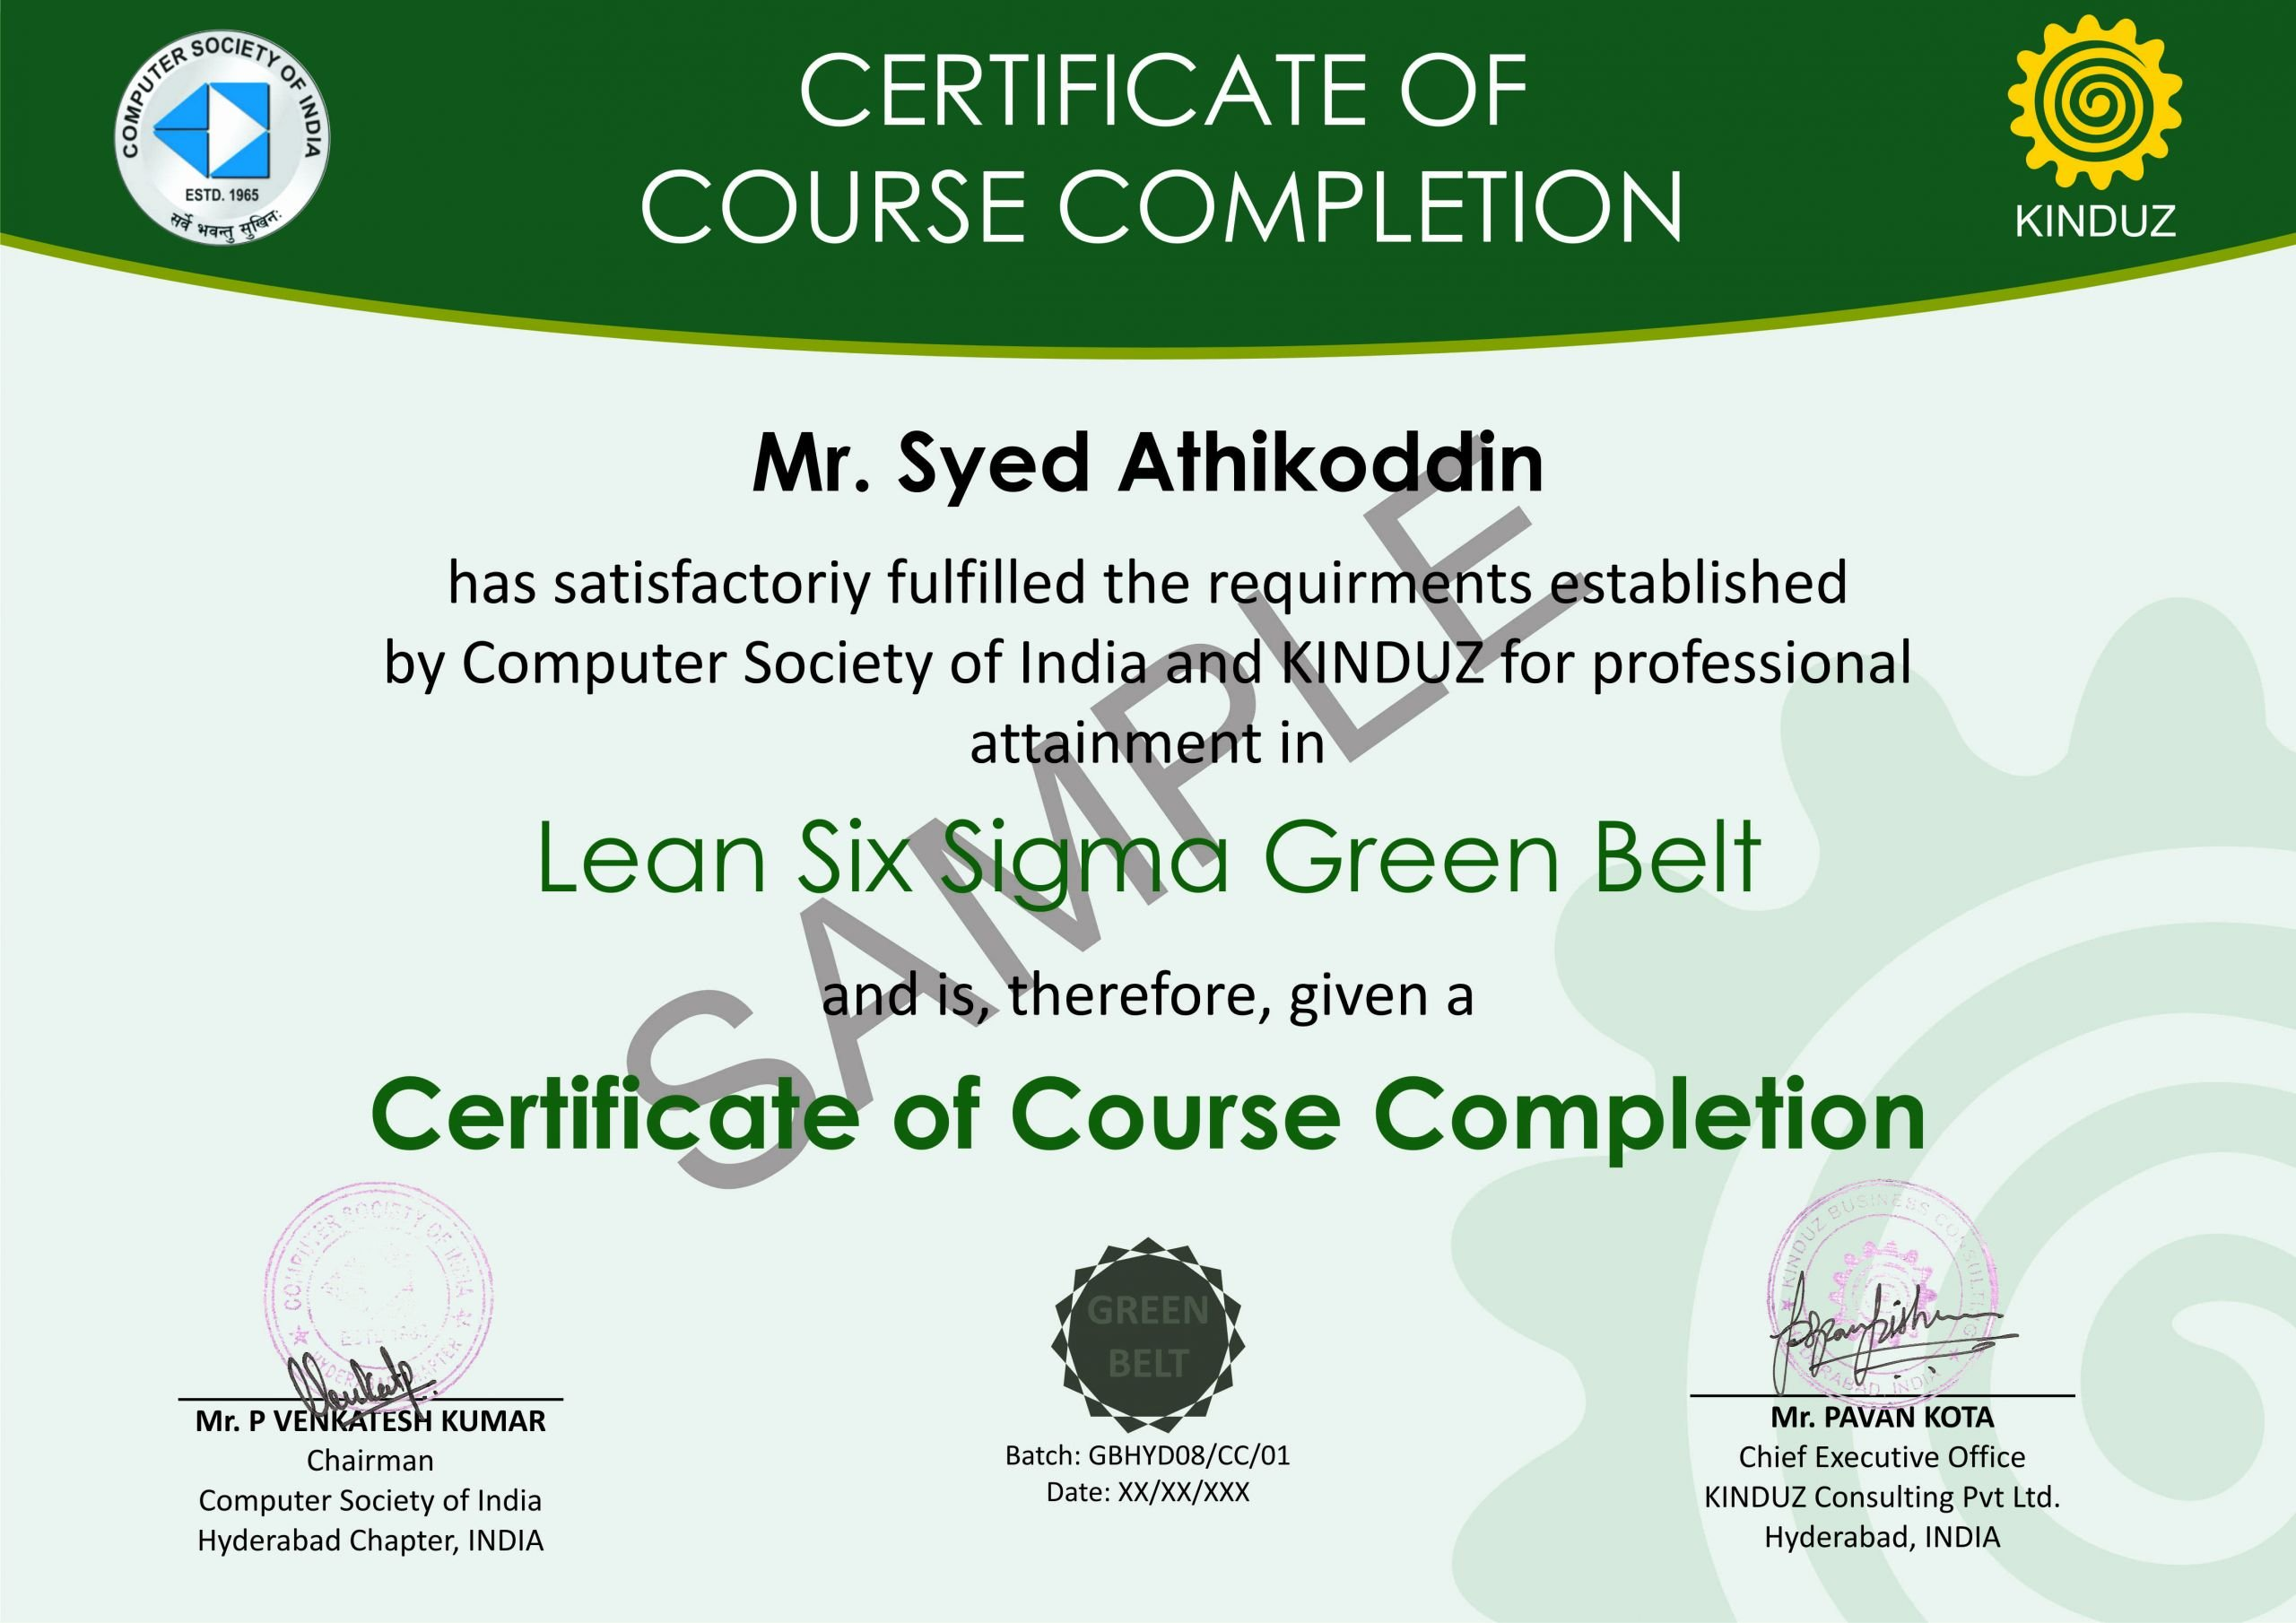 Six Sigma Green Belt Certificate Template Awesome Index Of Cdn 7 1999 364